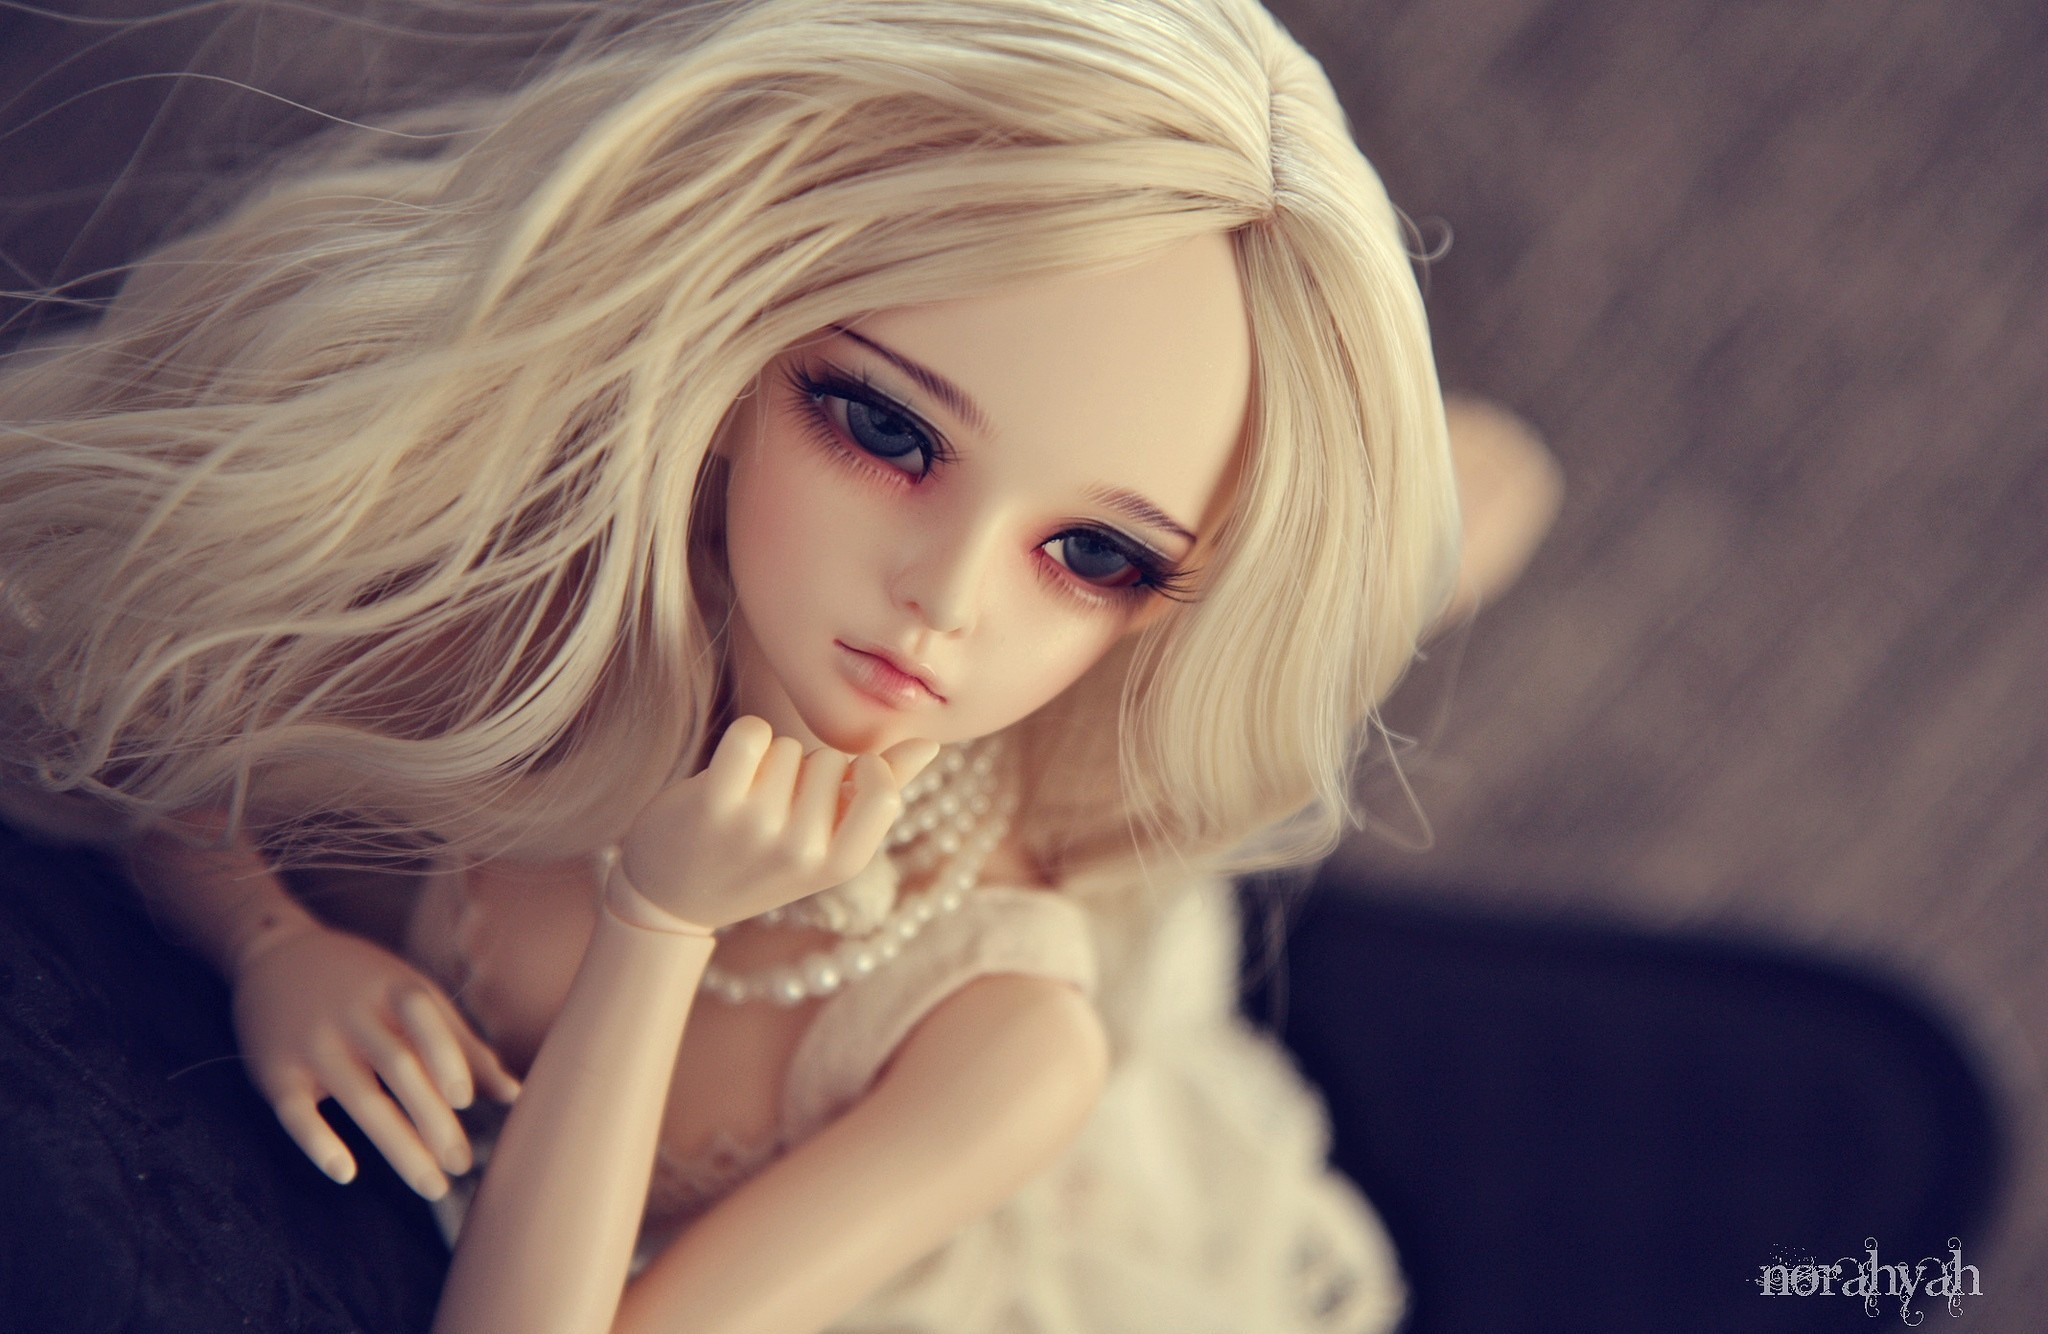 Toys Doll Glance Little Girls Toy Dolls Bokeh F Wallpaper